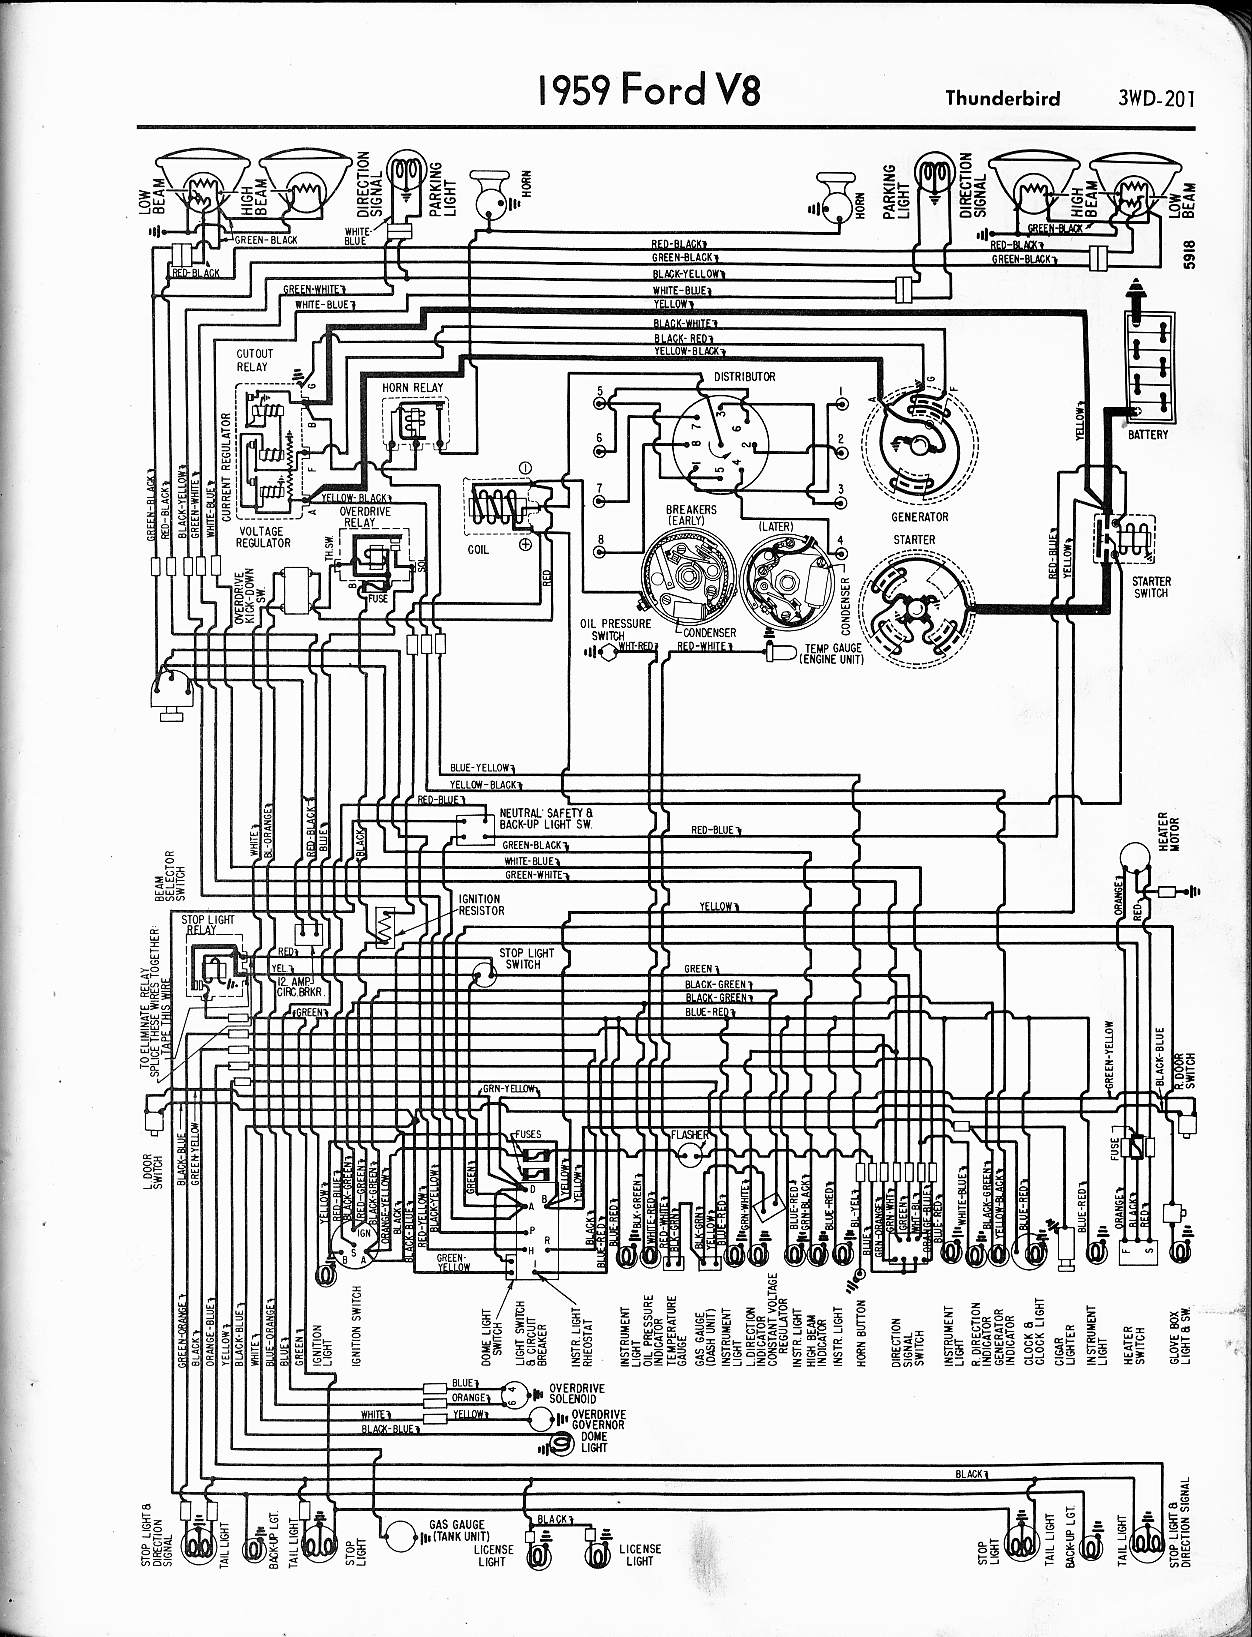 57 65 Ford Wiring Diagrams Diagram For 2006 Lincoln Mark Lt Get Free Image About 1959 Thunderbird